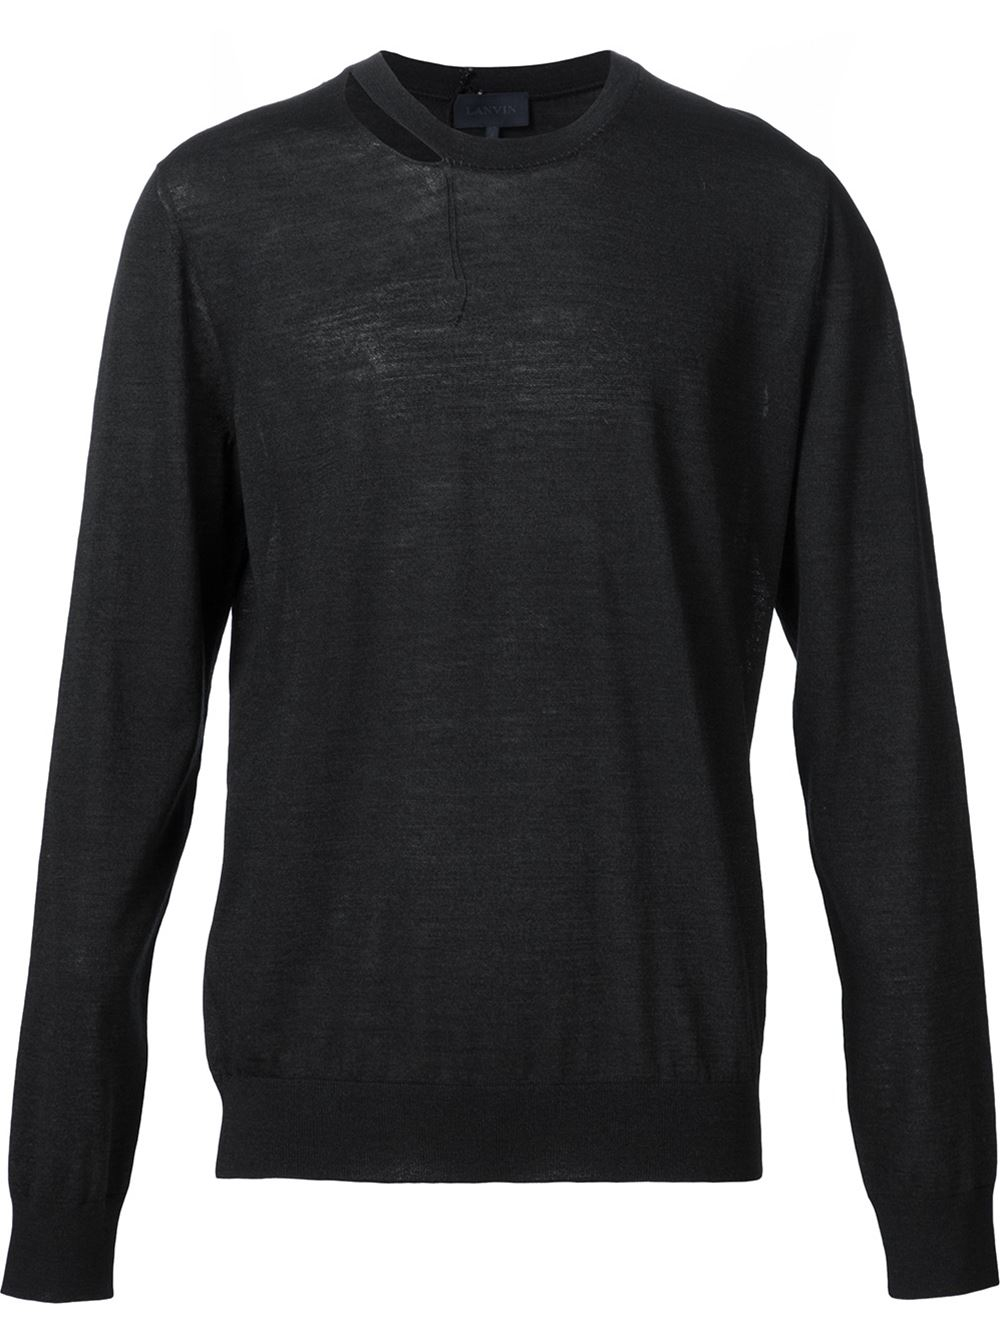 Shop for women's black jumpers at entefile.gq Next day delivery and free returns available. s of products online. Buy women's black jumpers now!